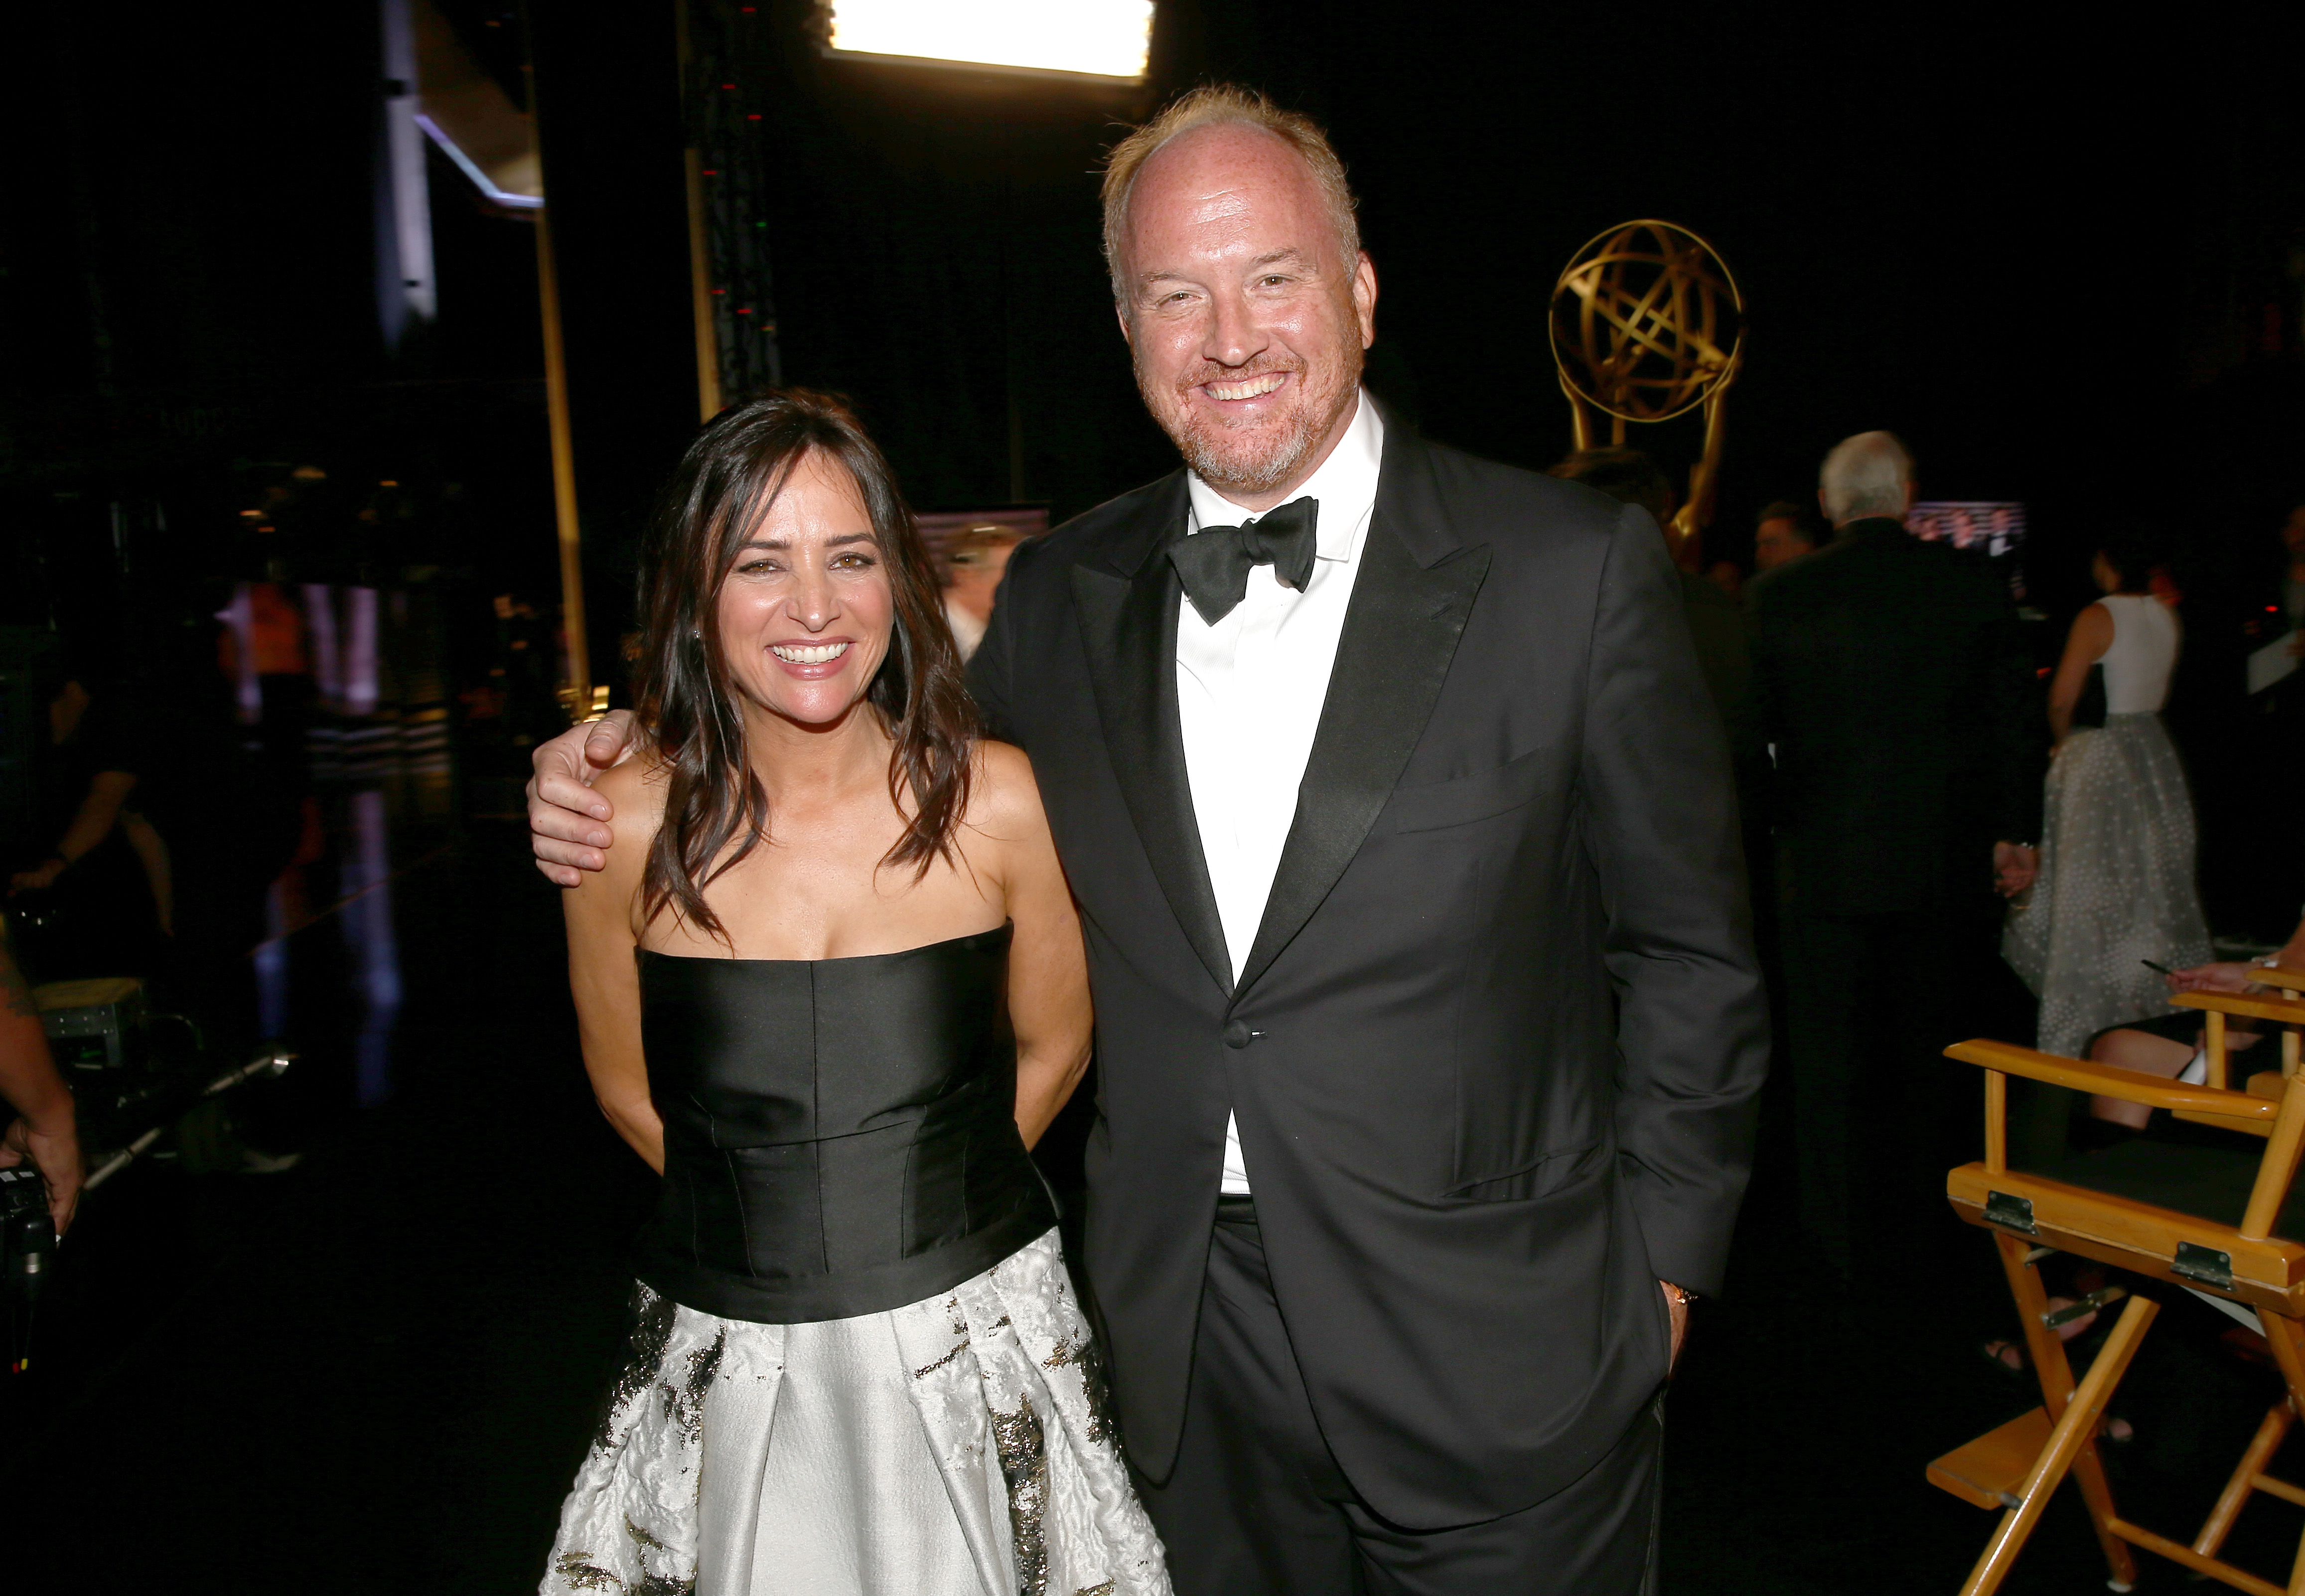 Pamela Adlon and Louis C.K. backstage during the 66th Annual Primetime Emmy Awards held at the Nokia Theater on August 25, 2014.